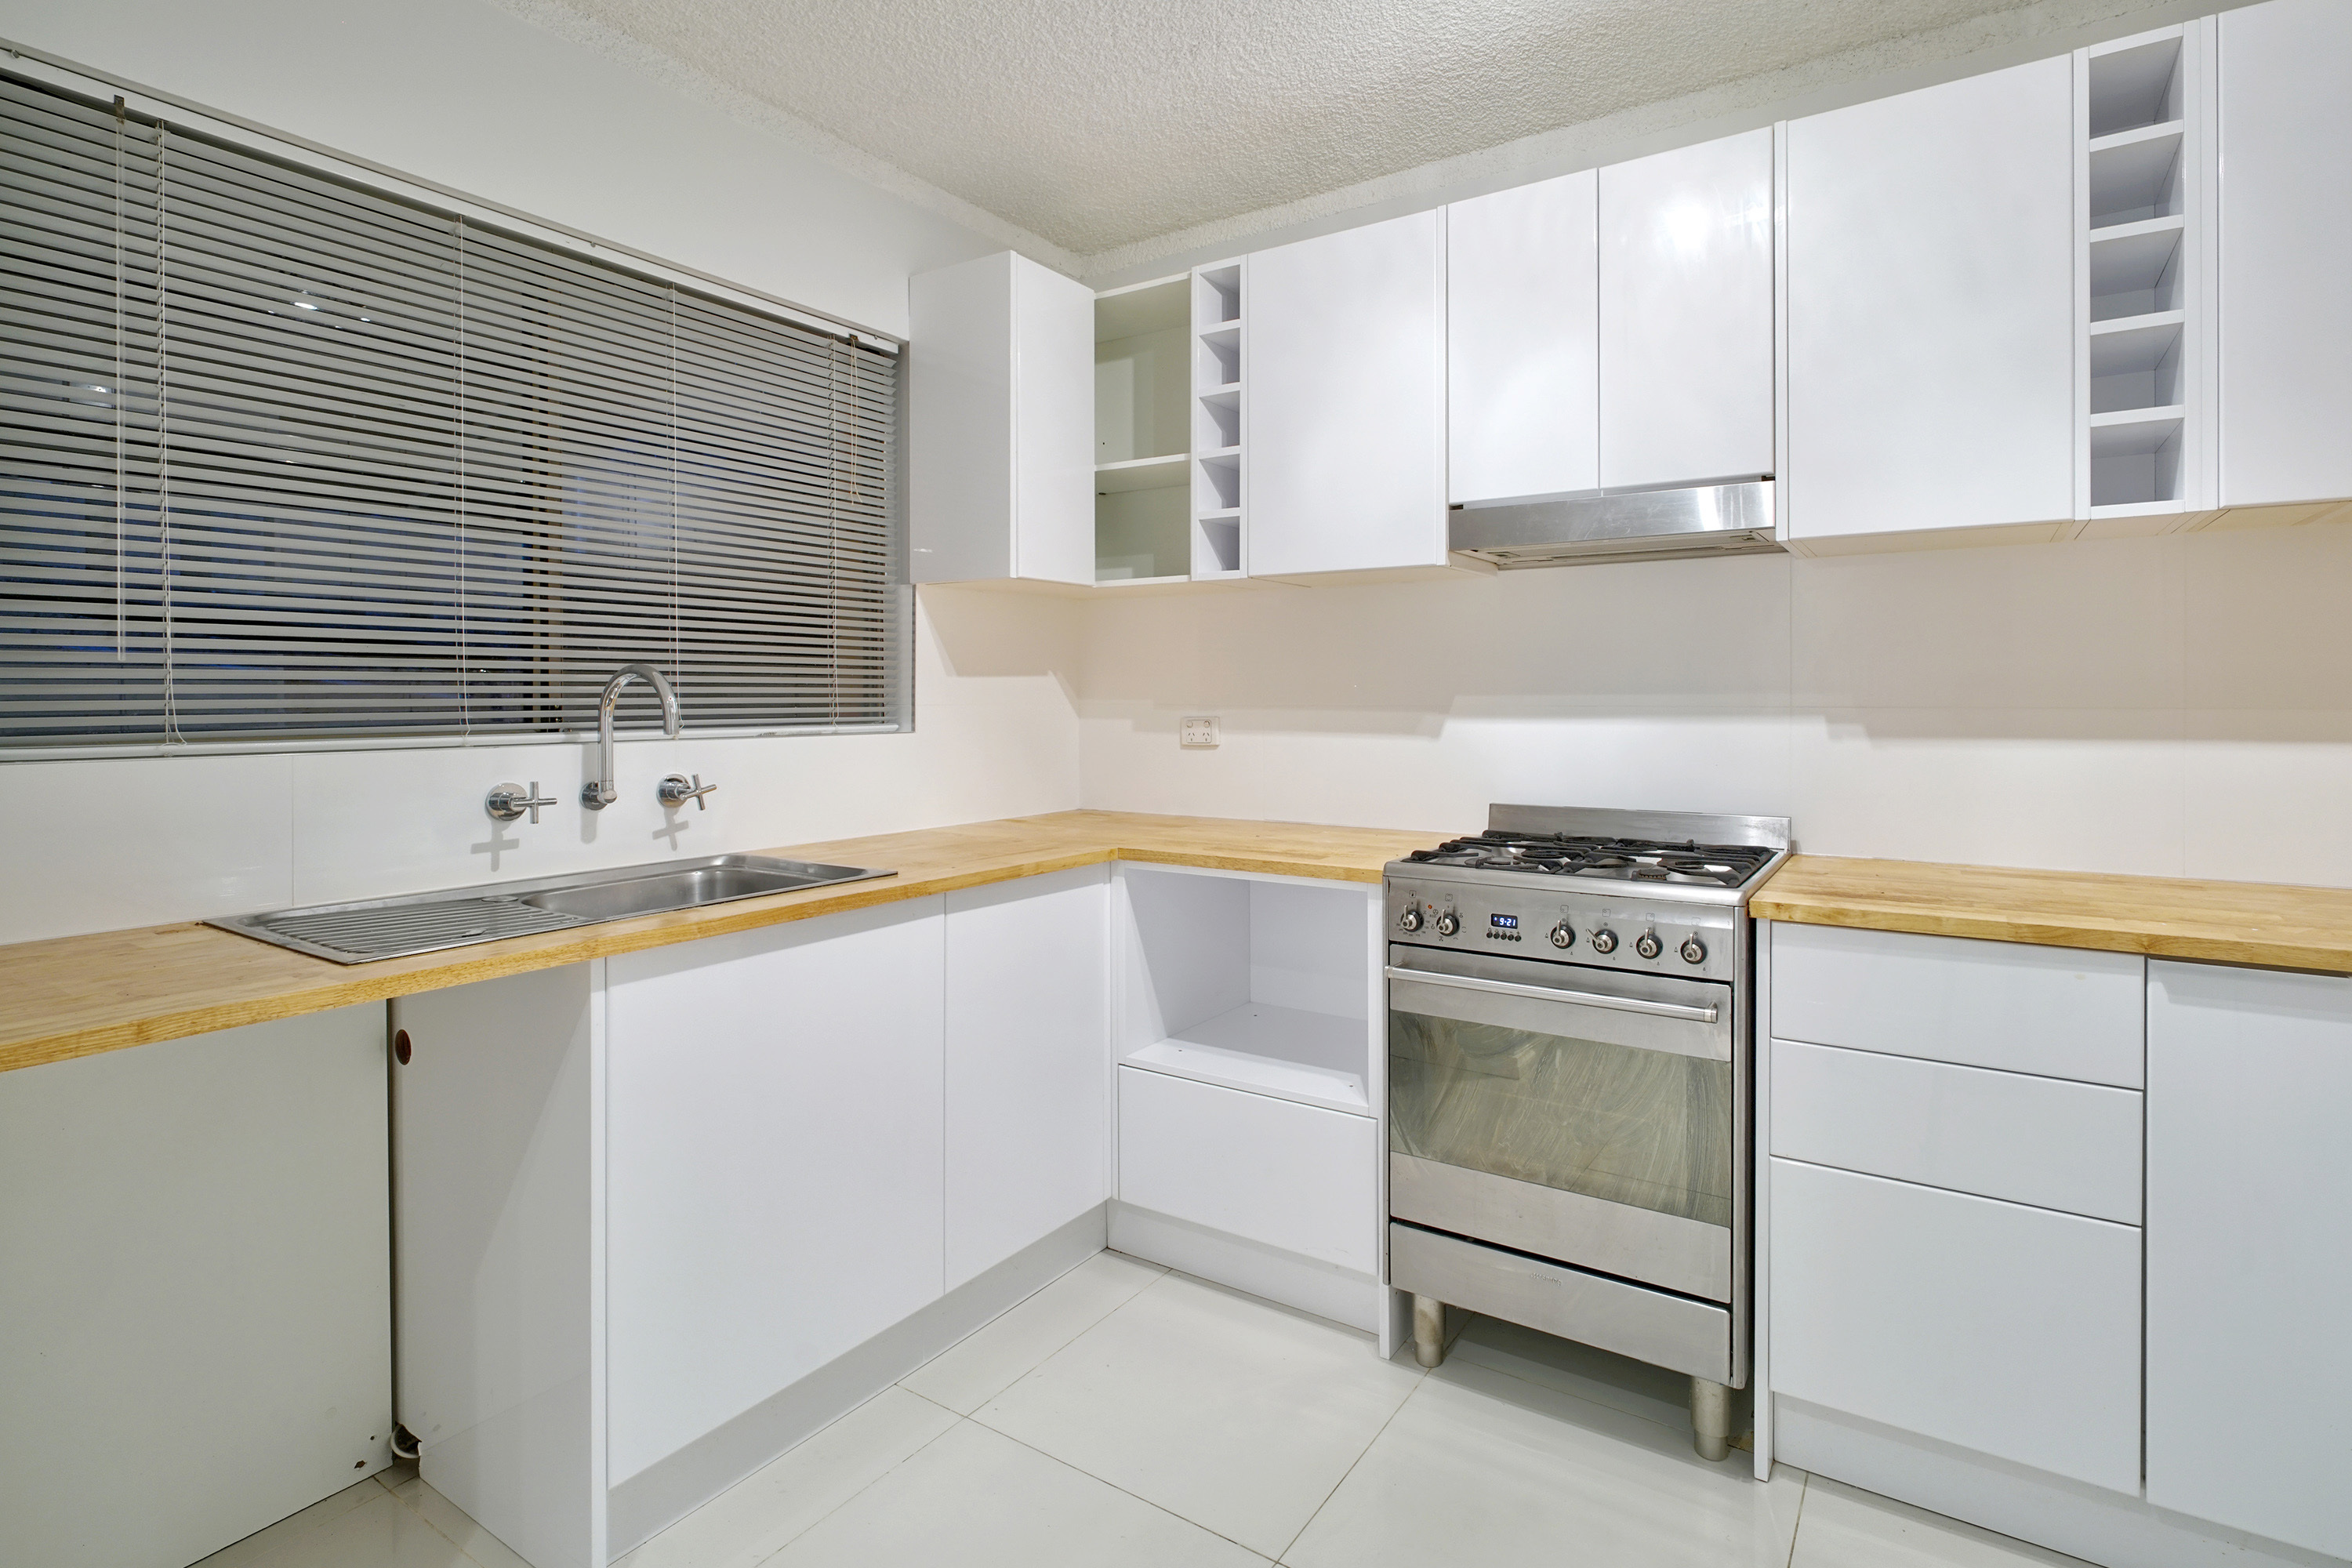 15/13 Storthes Street Mount Lawley 6050